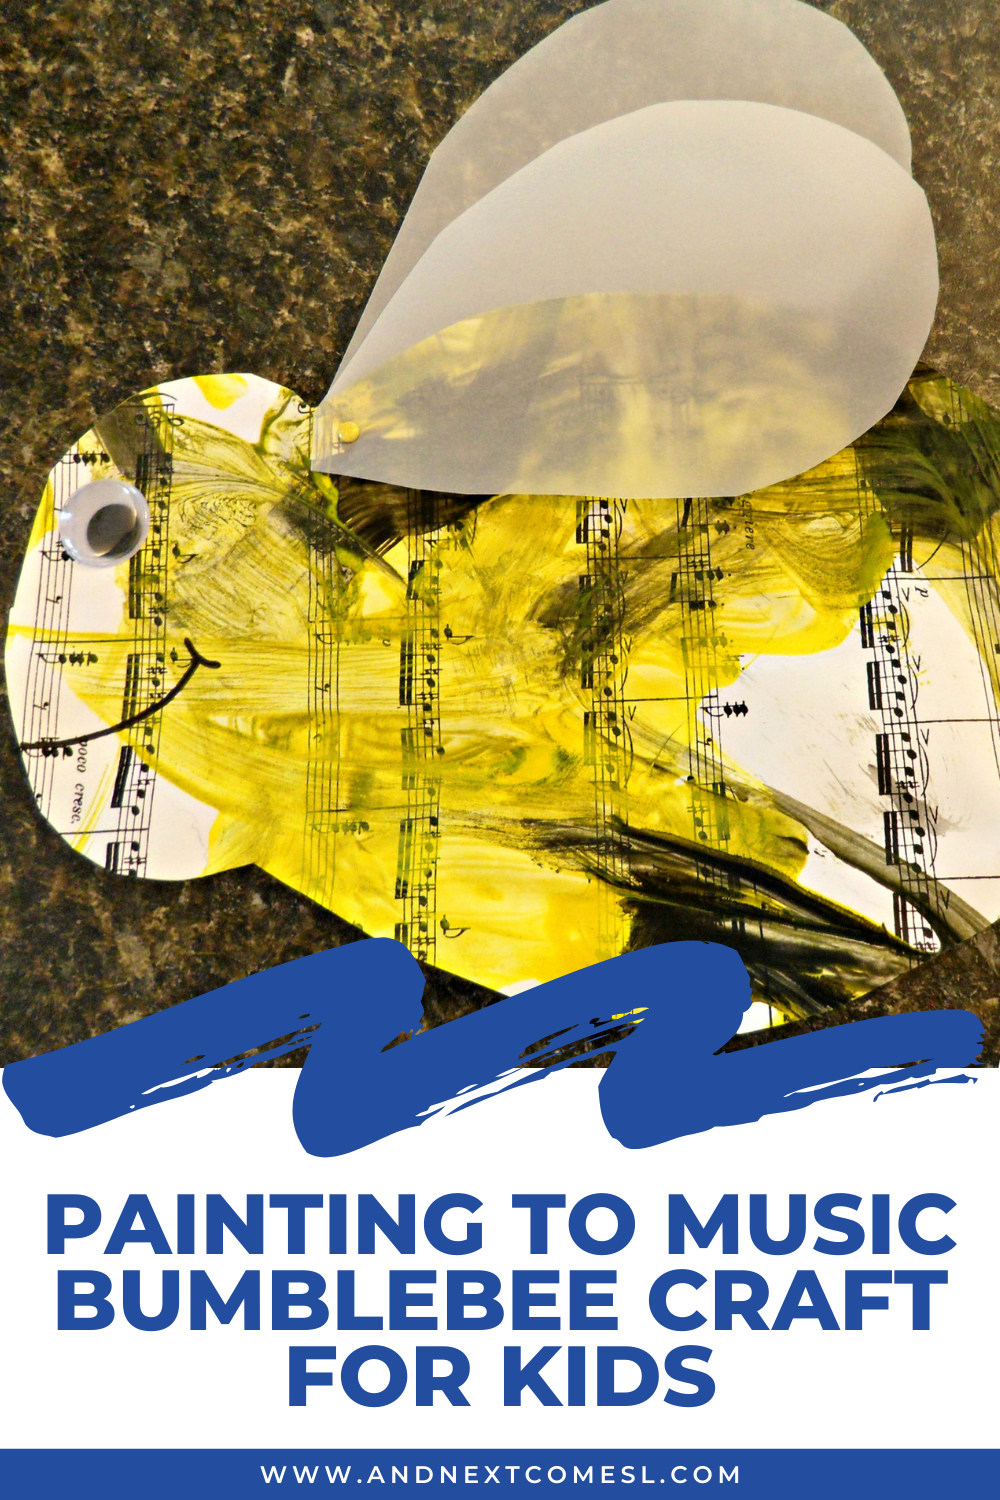 Preschool painting to music activity & bumblebee craft idea - great for studying Flight of the Bumblebee with kids